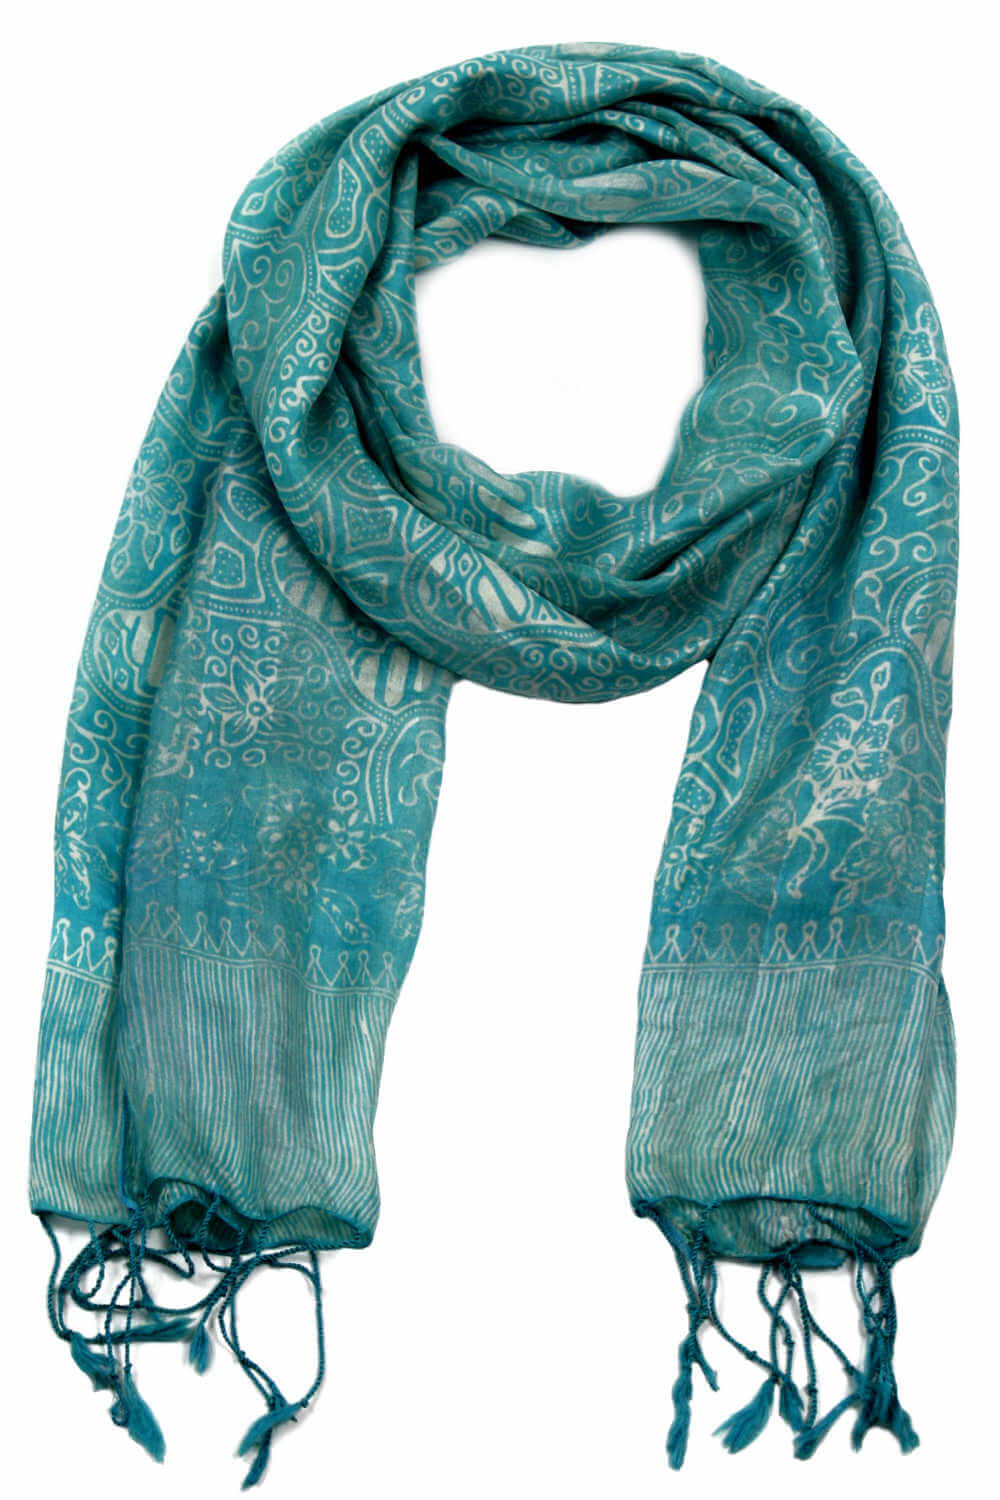 sky-blue-silk-scarf-floral-design-ladies